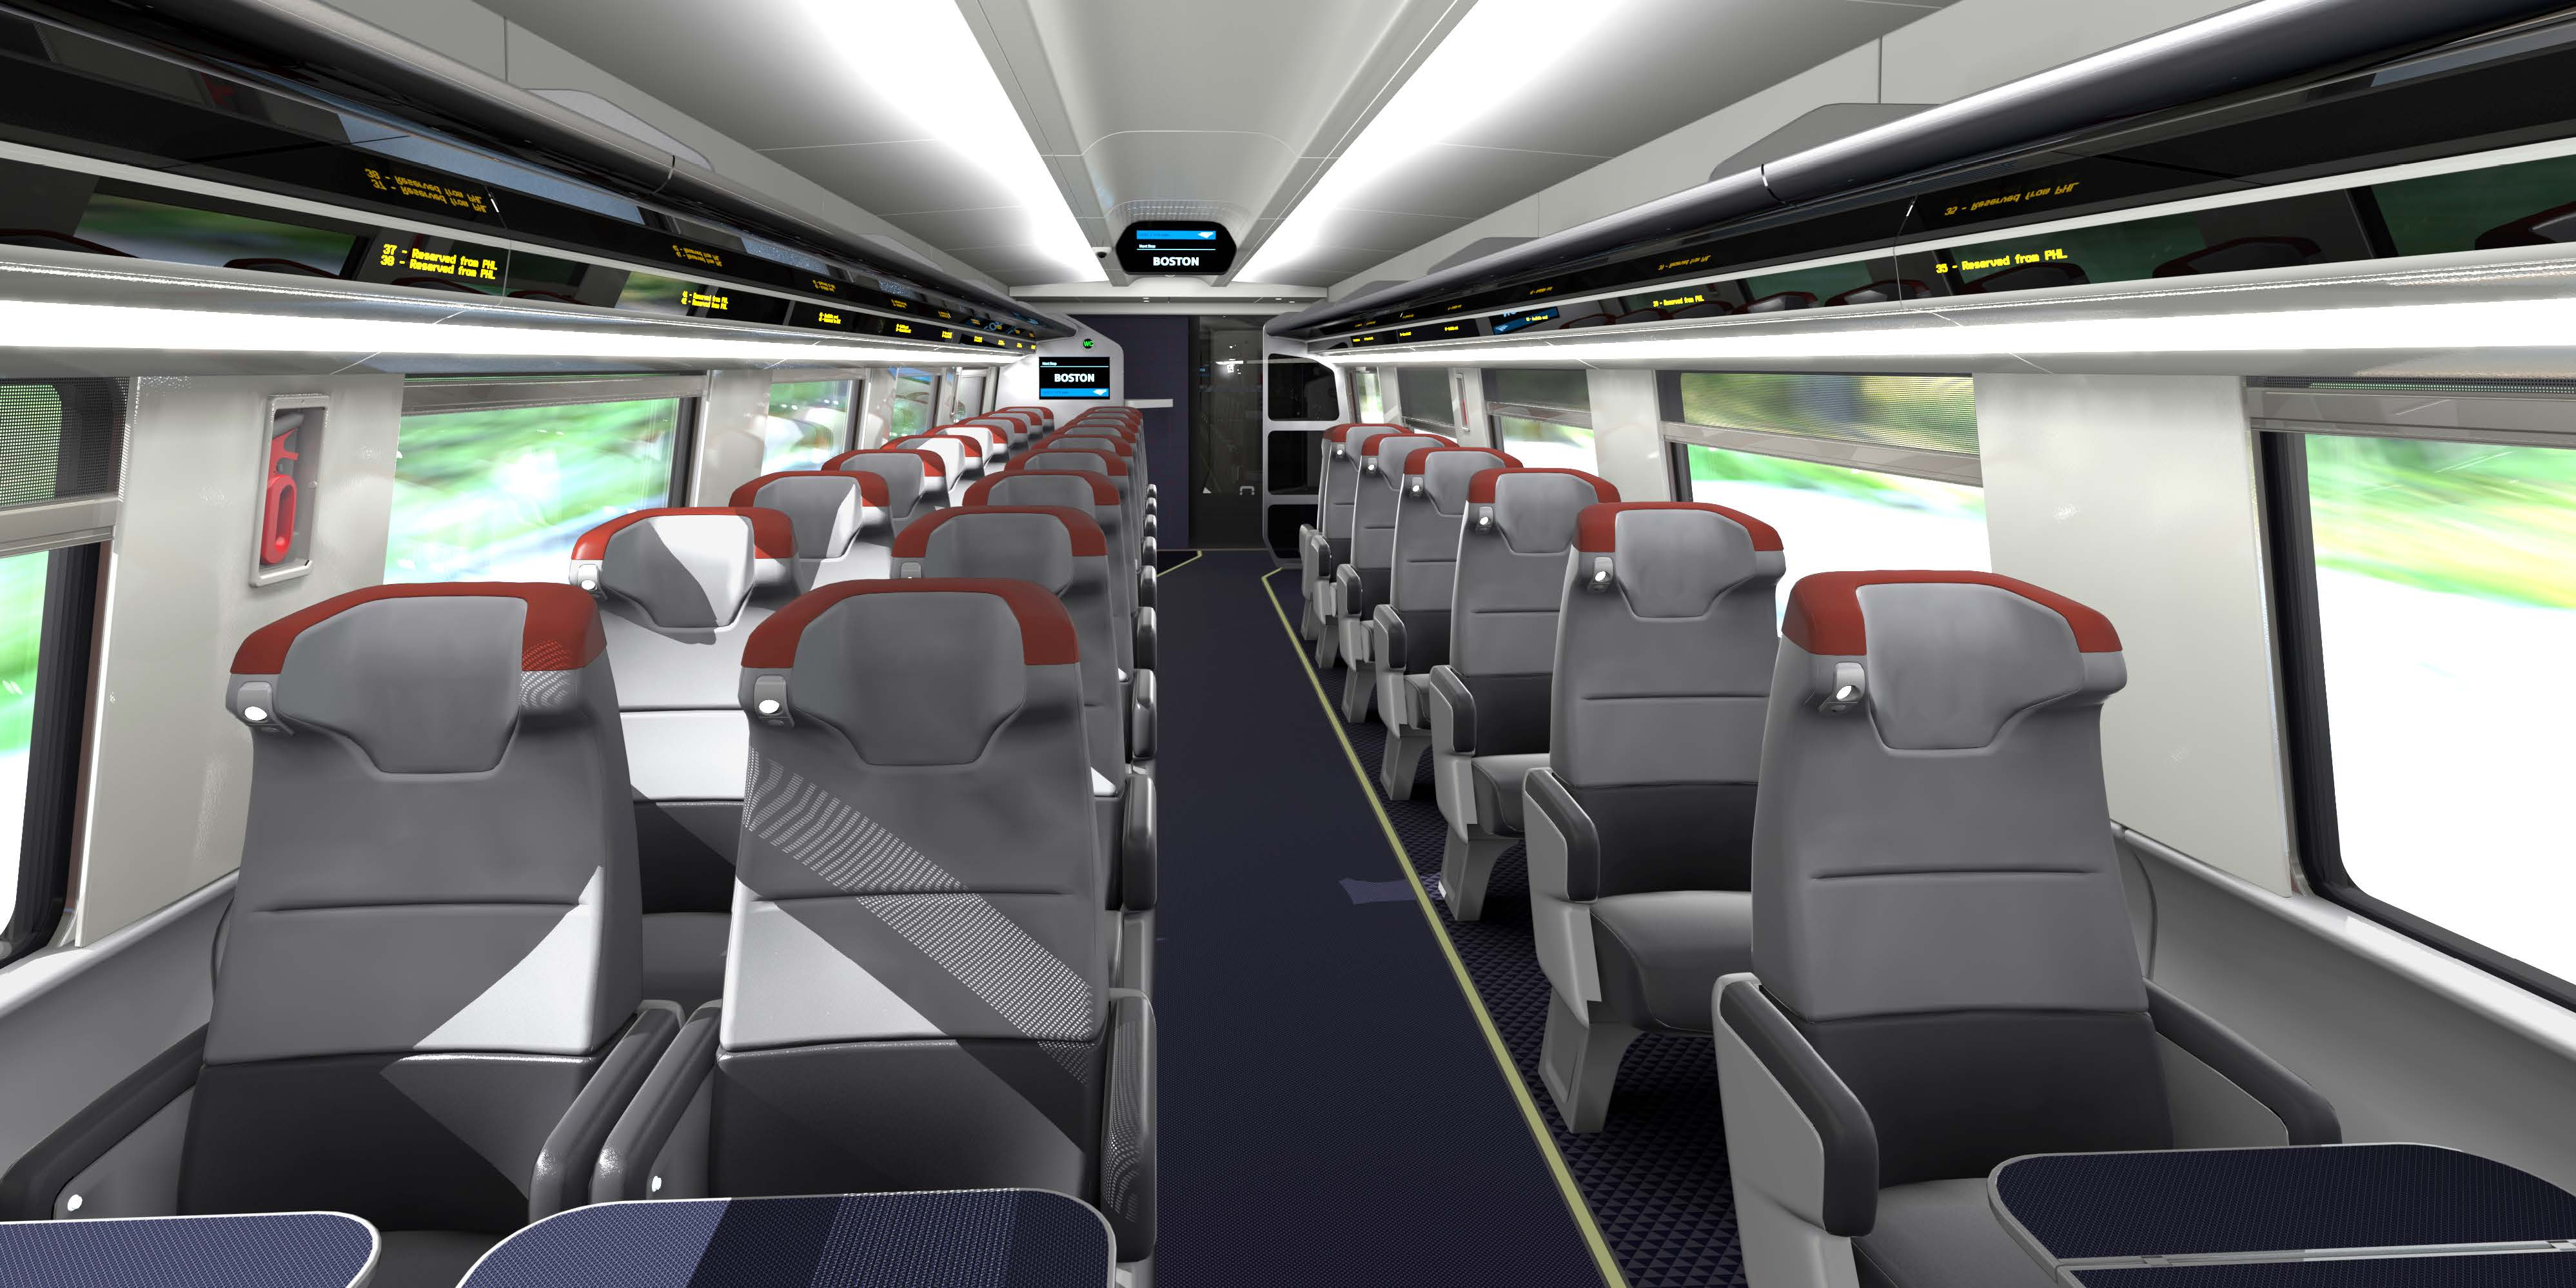 First Look at Amtrak's New Acela Business and First Class